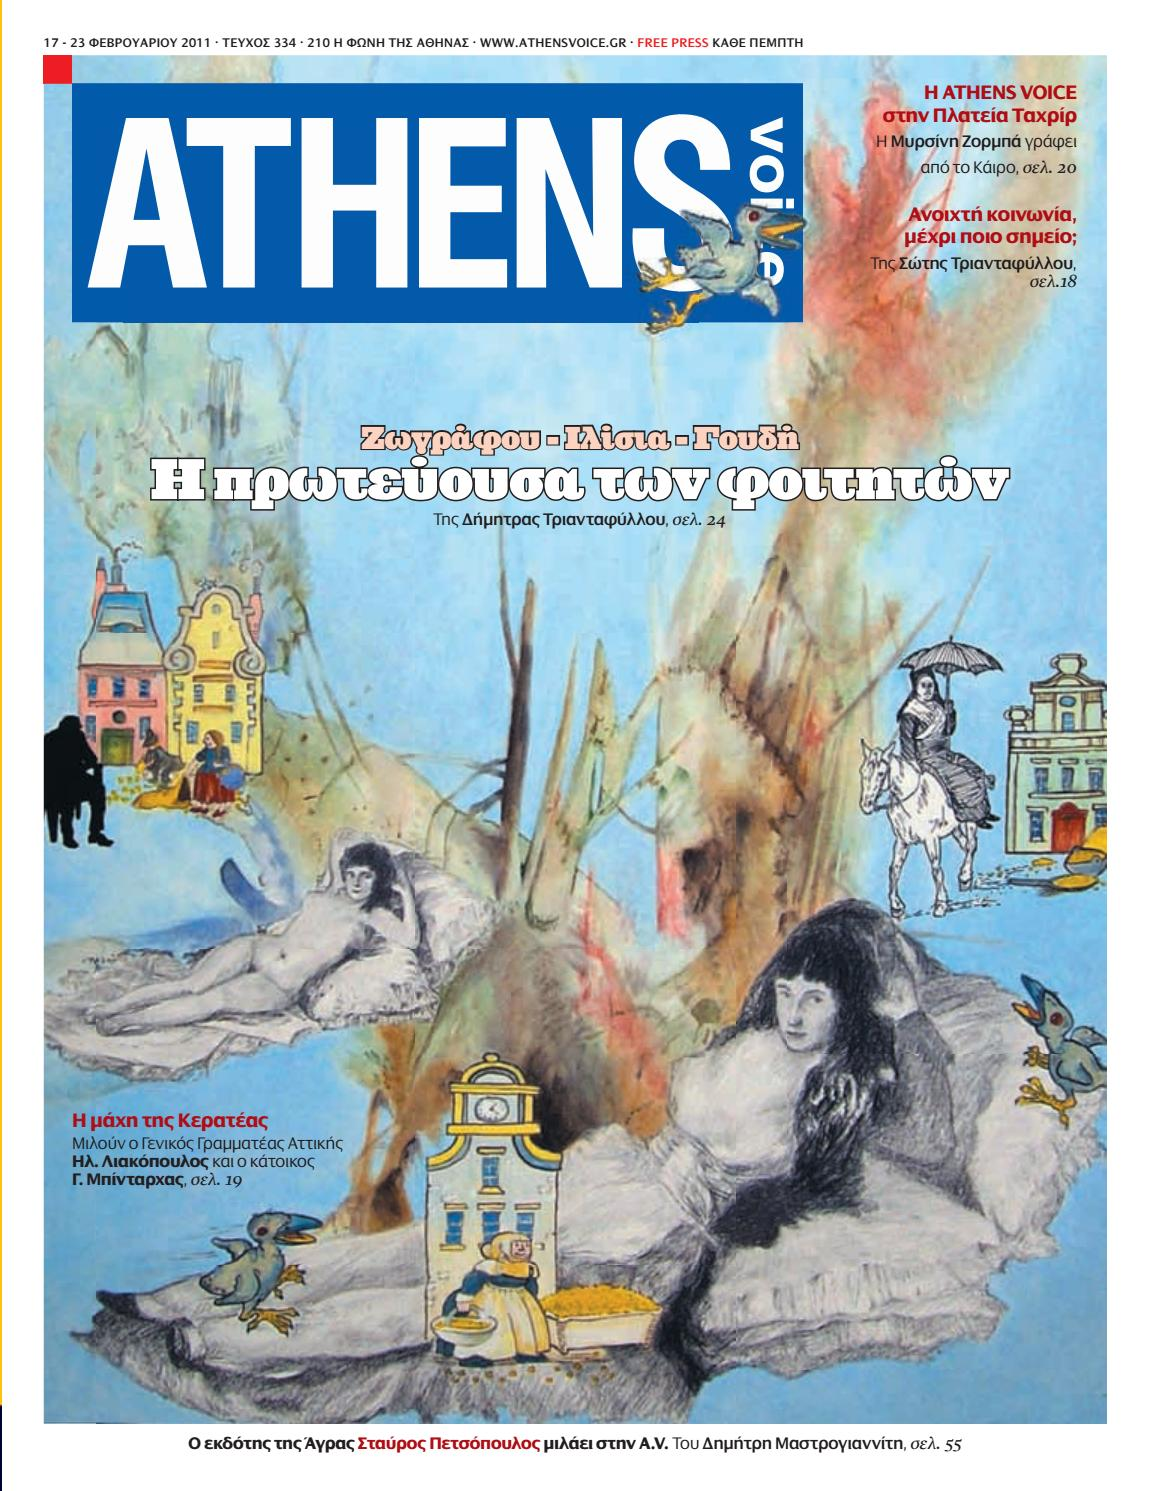 431584f15e0 Athens Voice 334 by Athens Voice - issuu